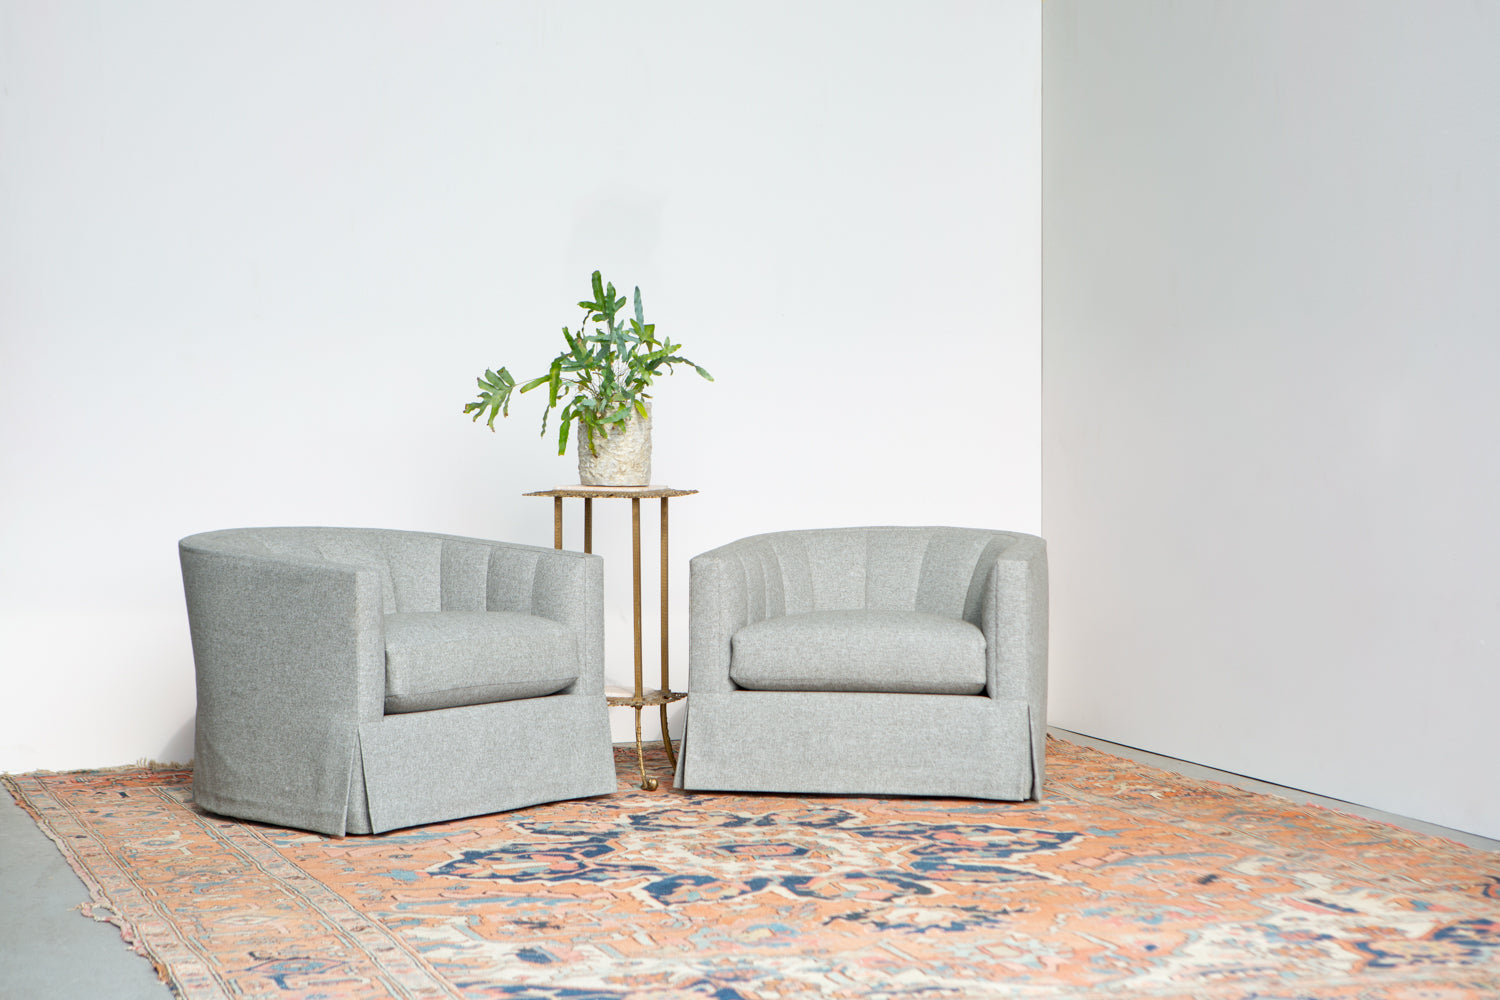 Product shot of two Coco Swivel chairs by ffabb home